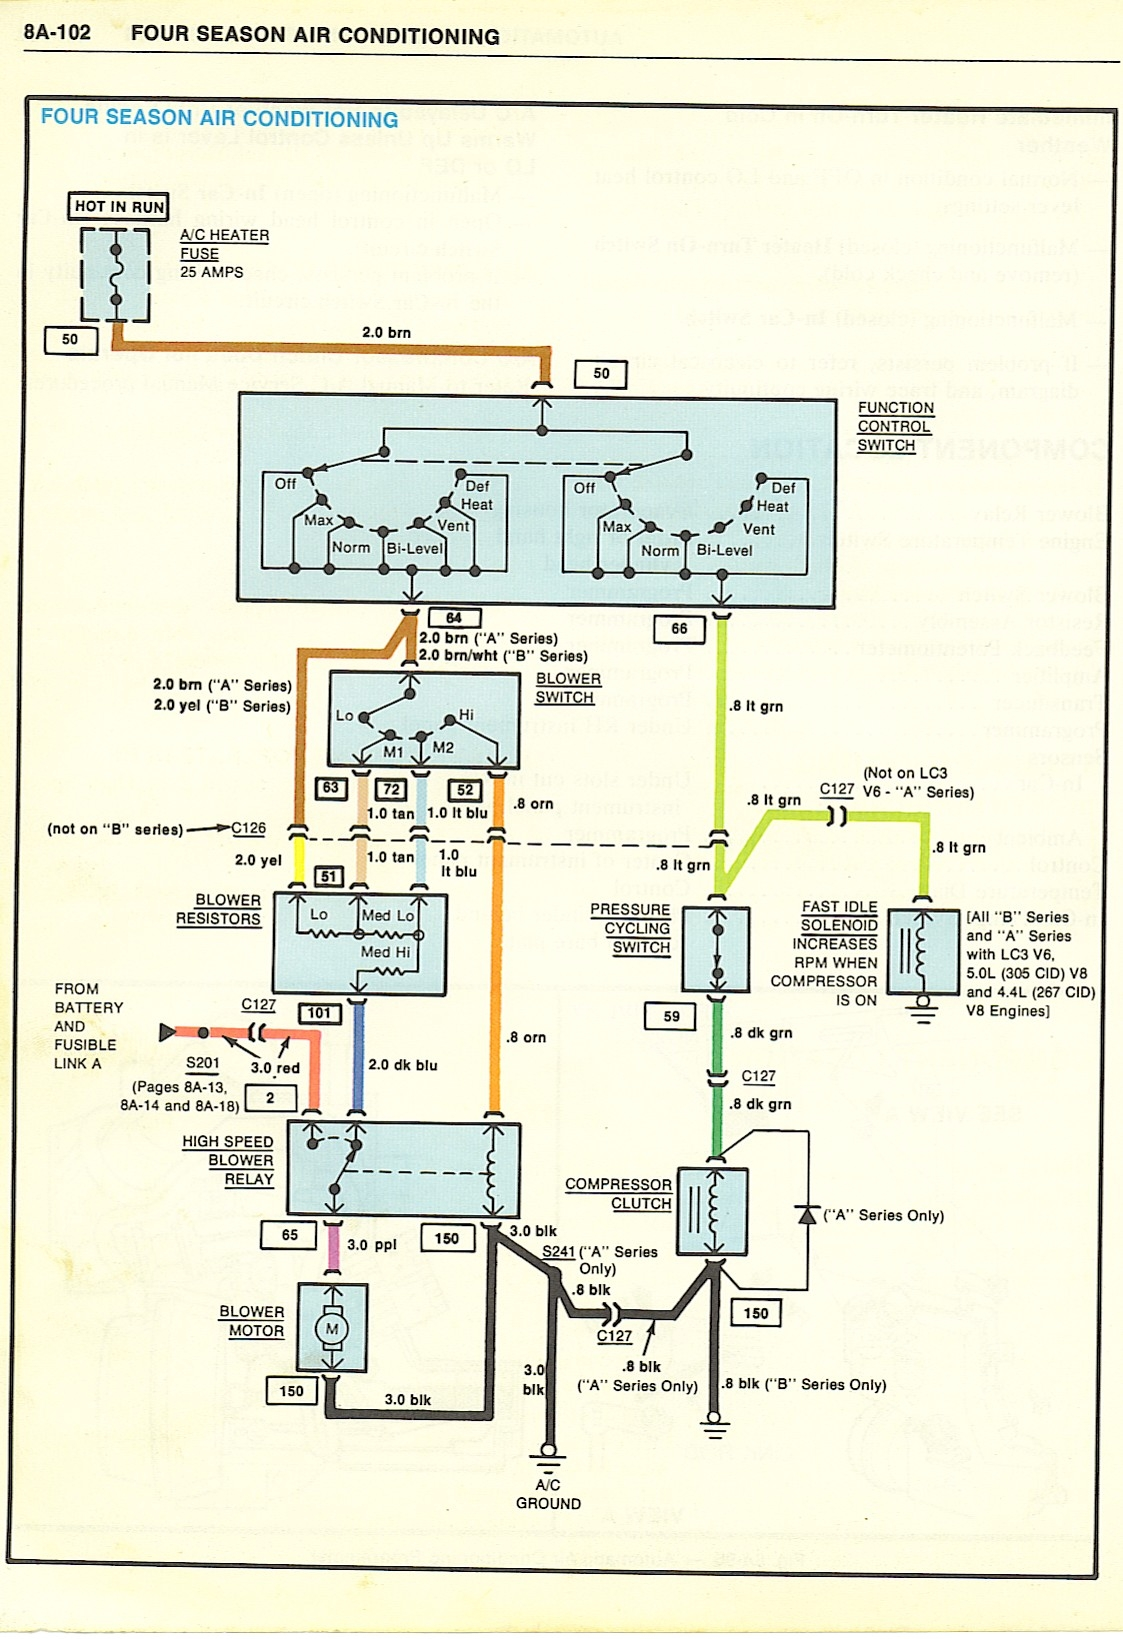 1968 FourSeasonAirConditioner chevy diagrams ac wiring diagram at bakdesigns.co